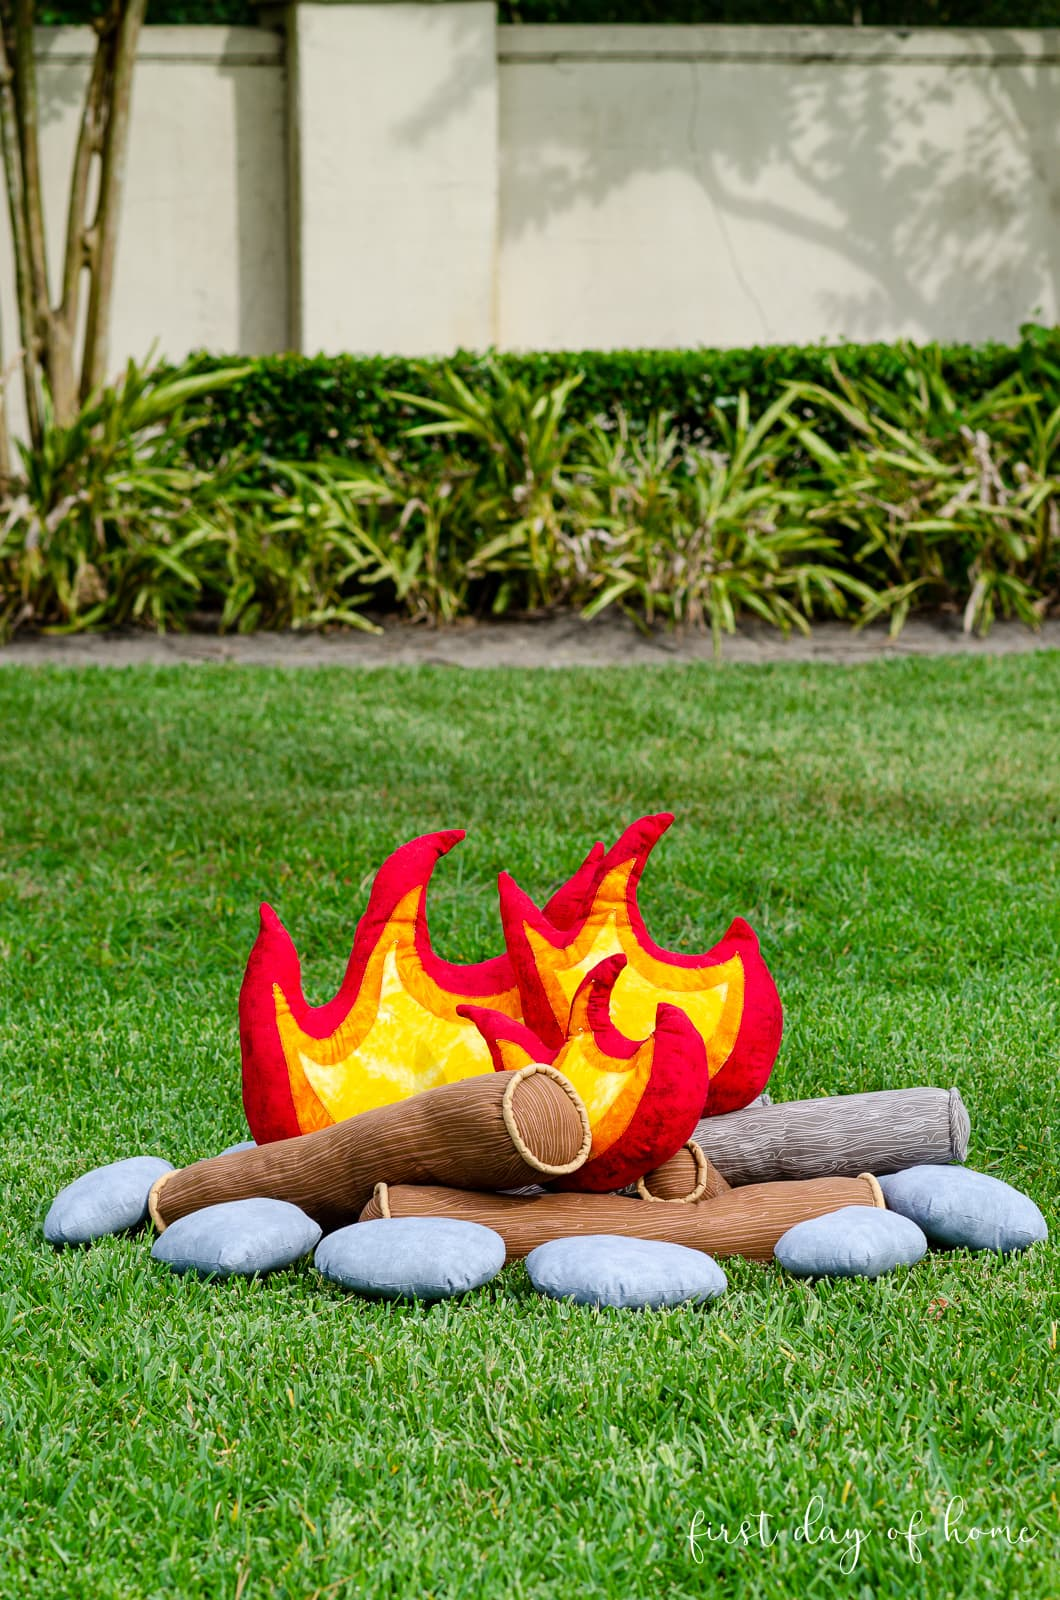 Kids pretend campfire set with flames, logs and stones on outdoor lawn